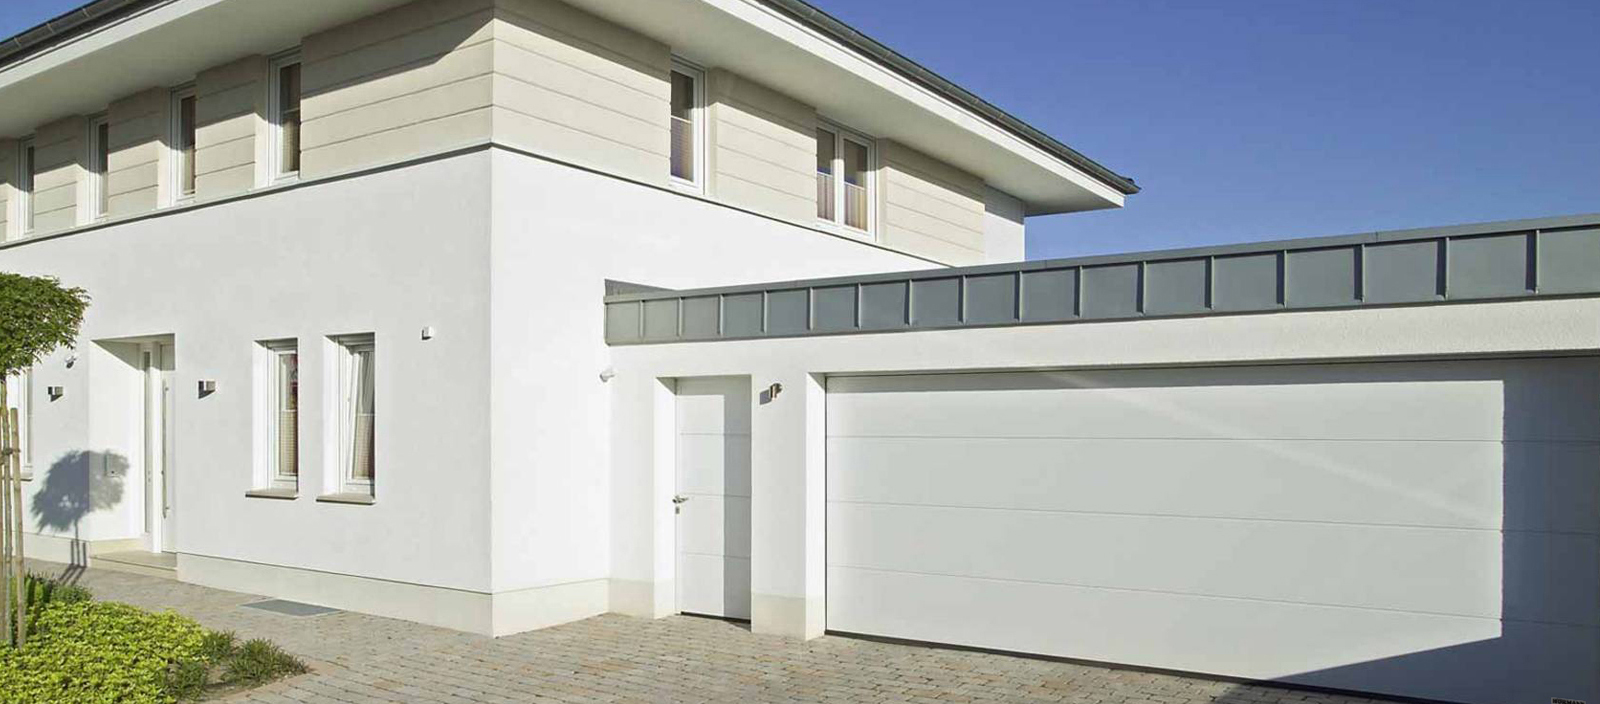 Designer Garage Doors by Express Garage Doors